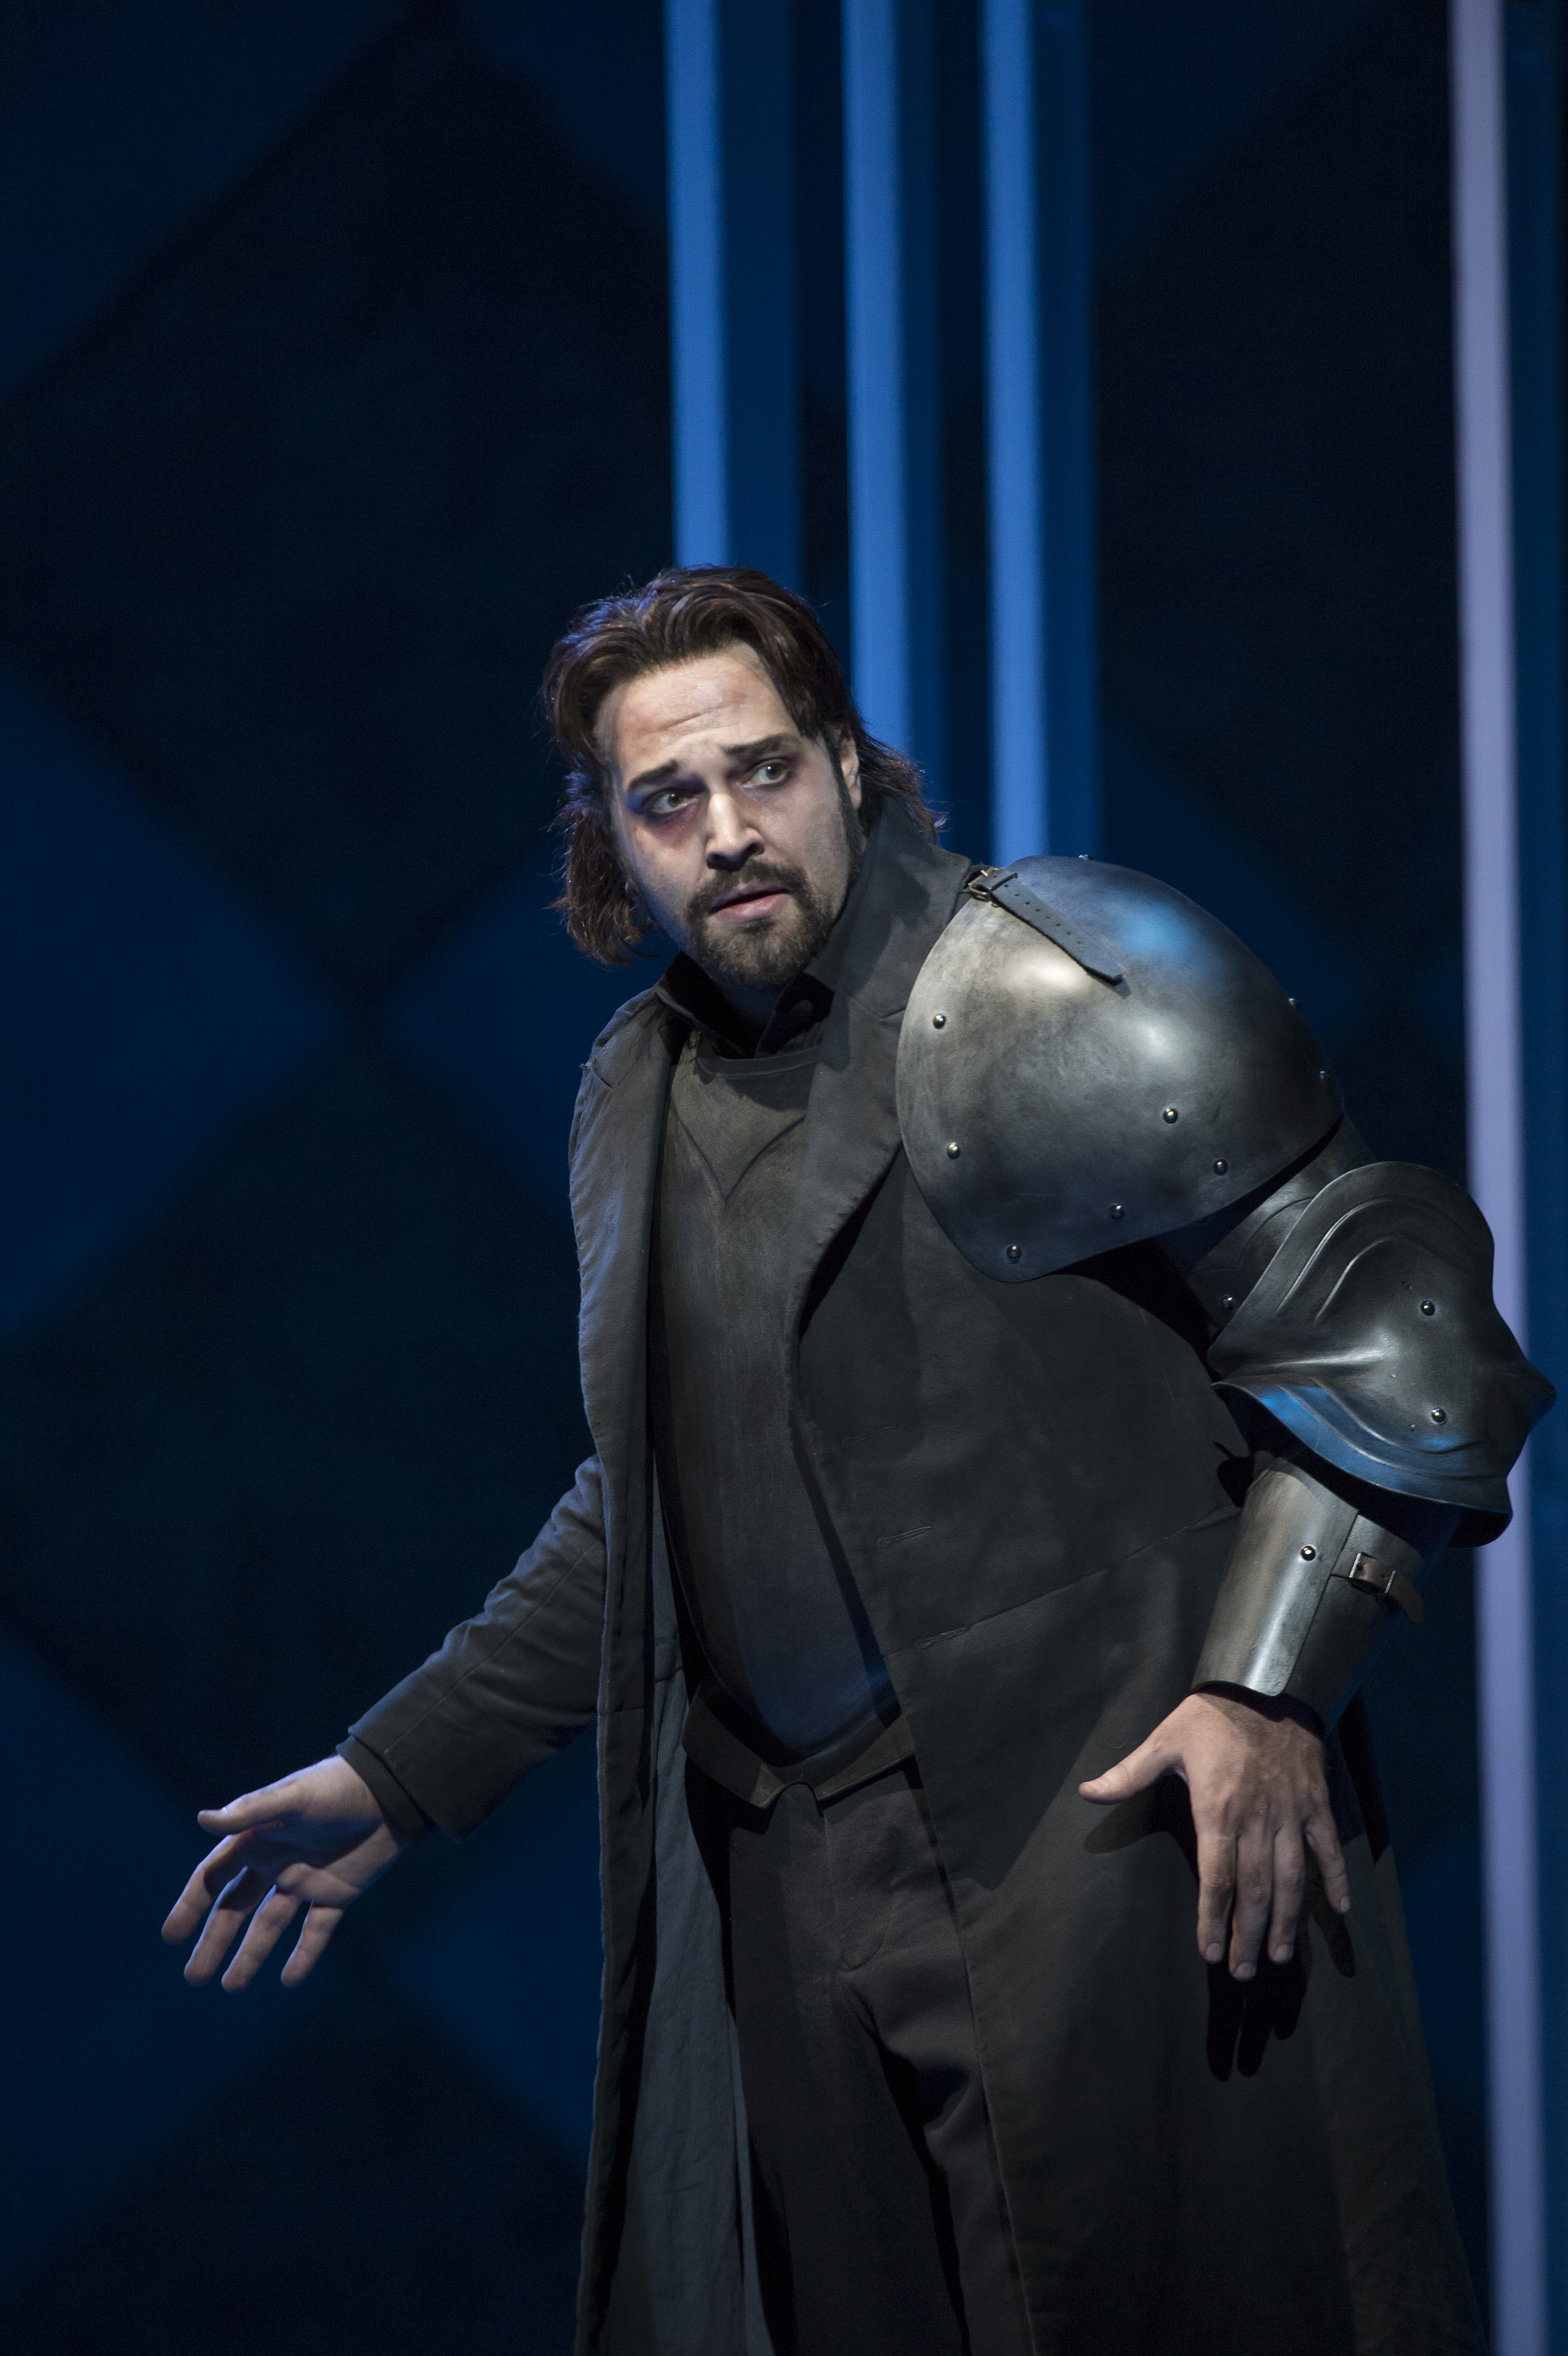 Robert Le Diable is an overdue opera revival – but mainly one for buffs